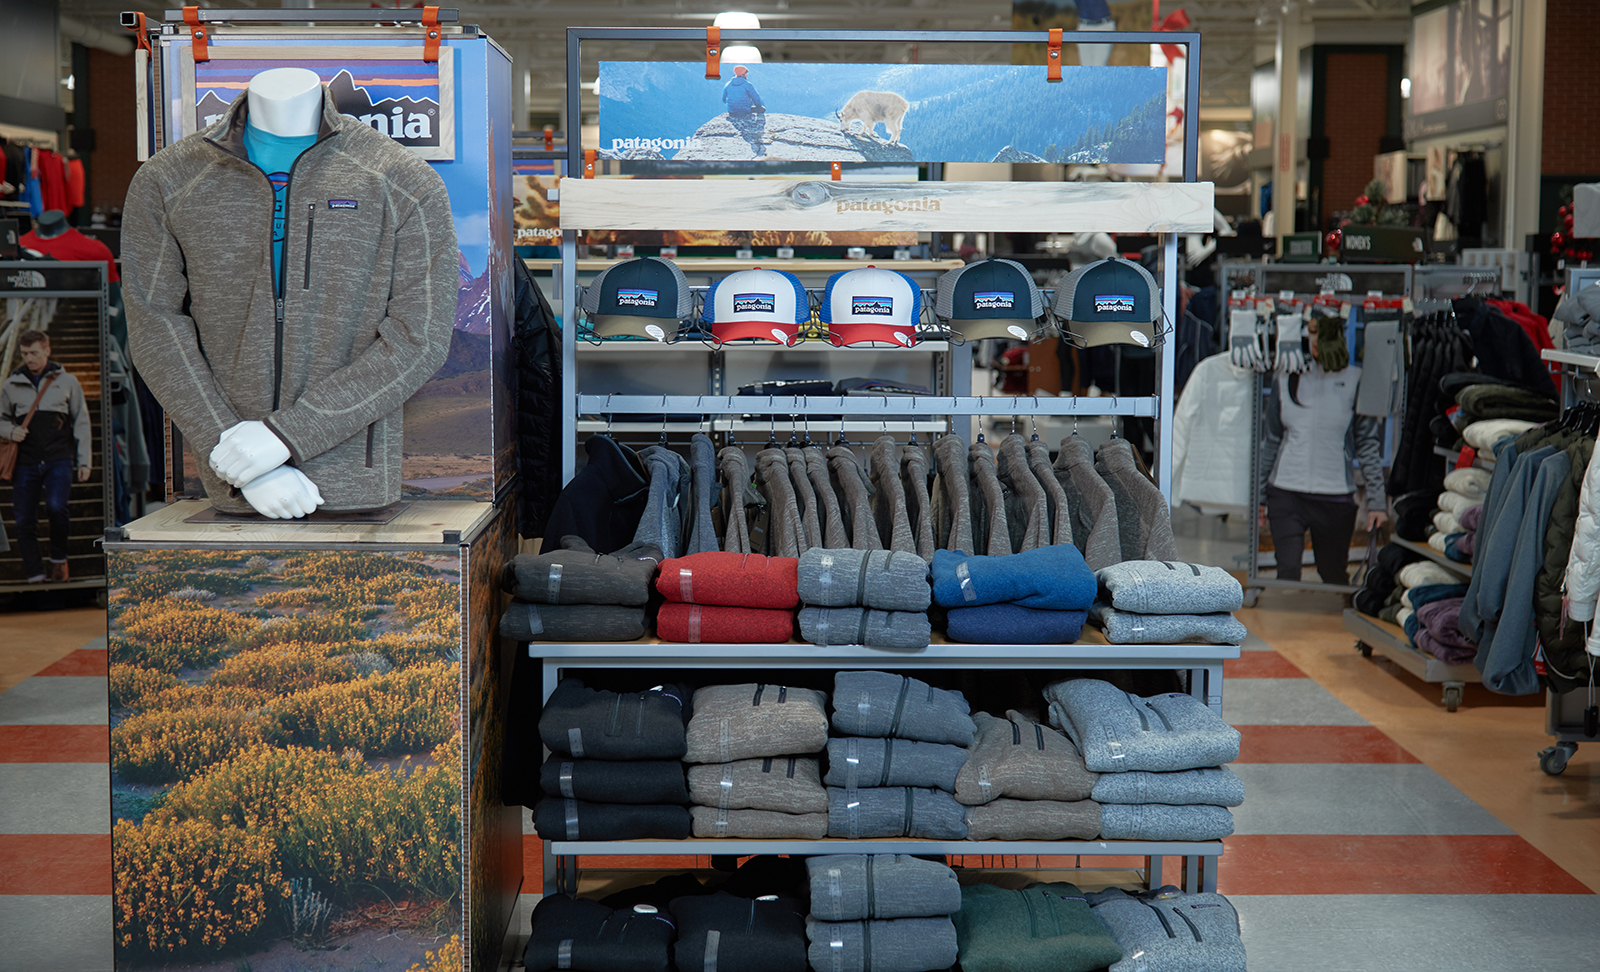 A final in-store view of the Patagonia display The Bernard Group designed to increase product count without increasing footprint.